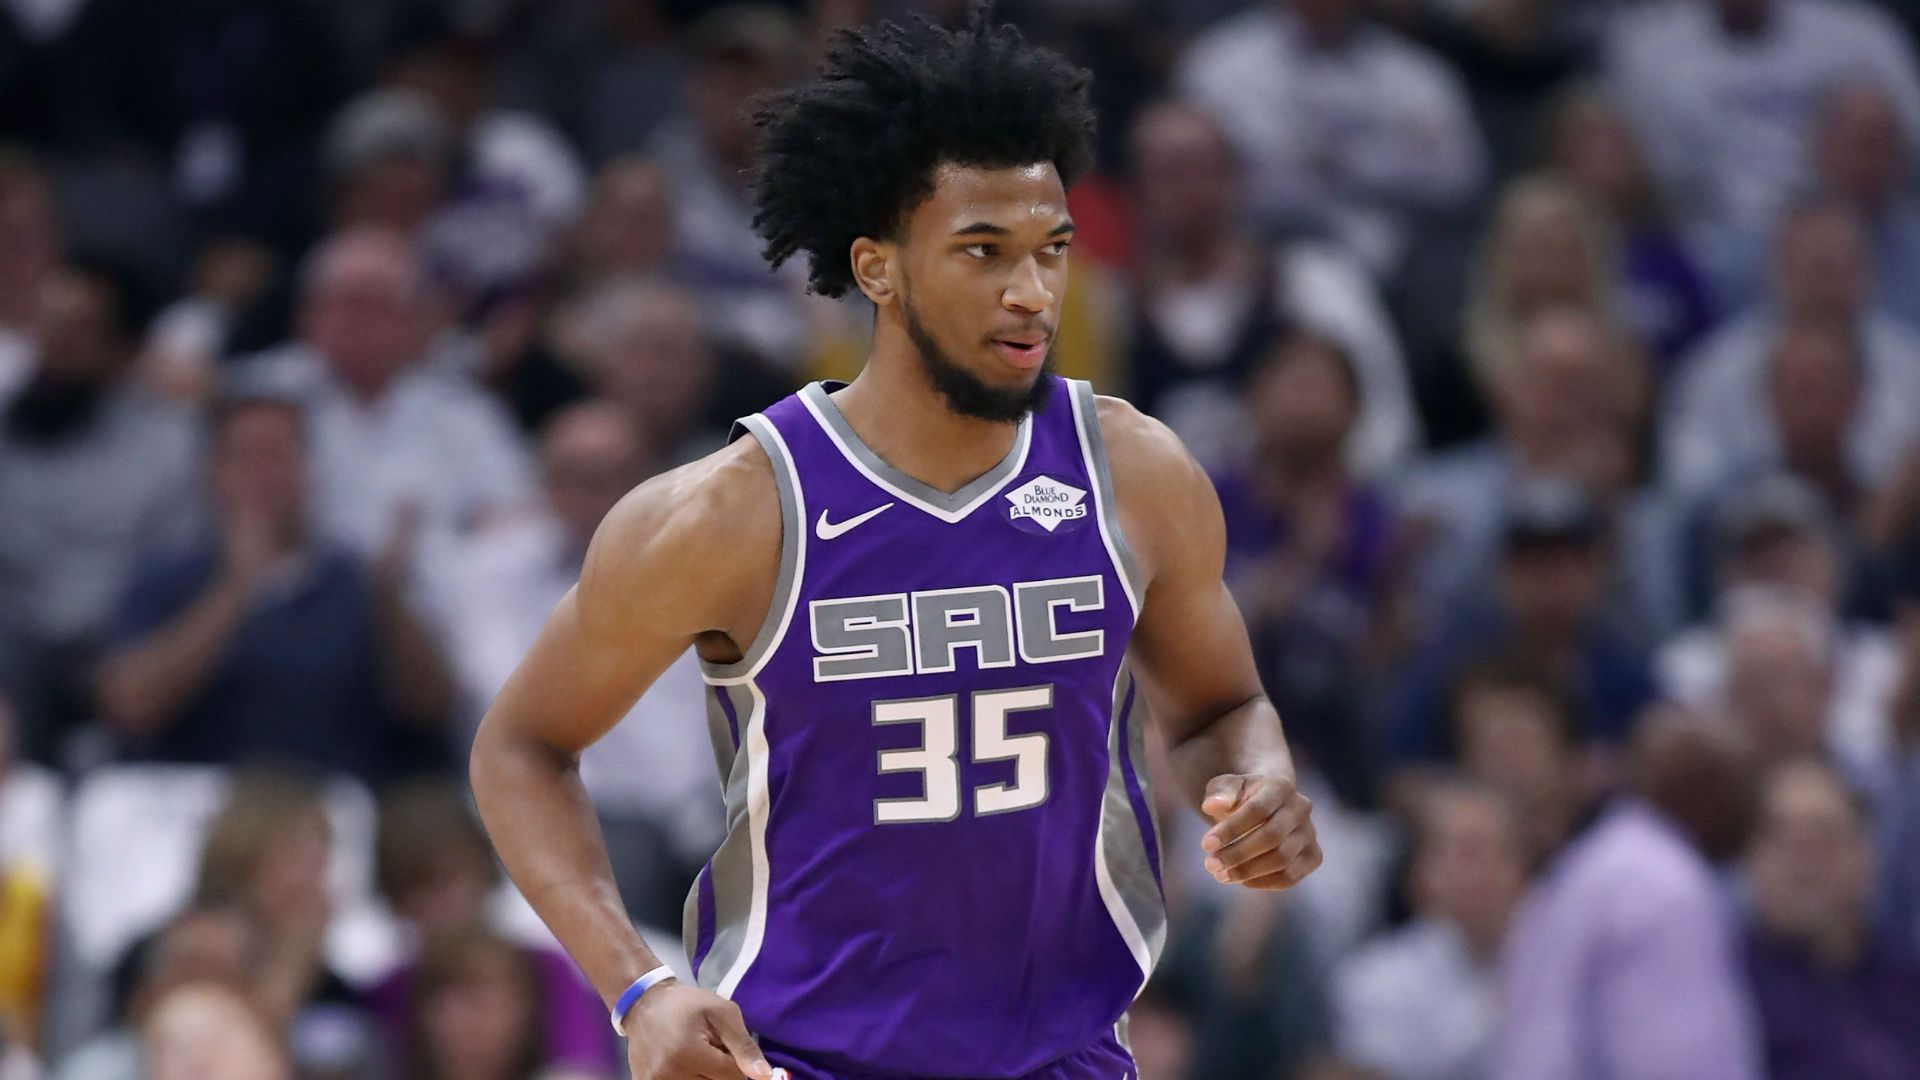 2019-20 NBA Break-out Stars: Sophomore Power Forwards Marvin Bagley And Jaren Jackson Are Next Level Stars